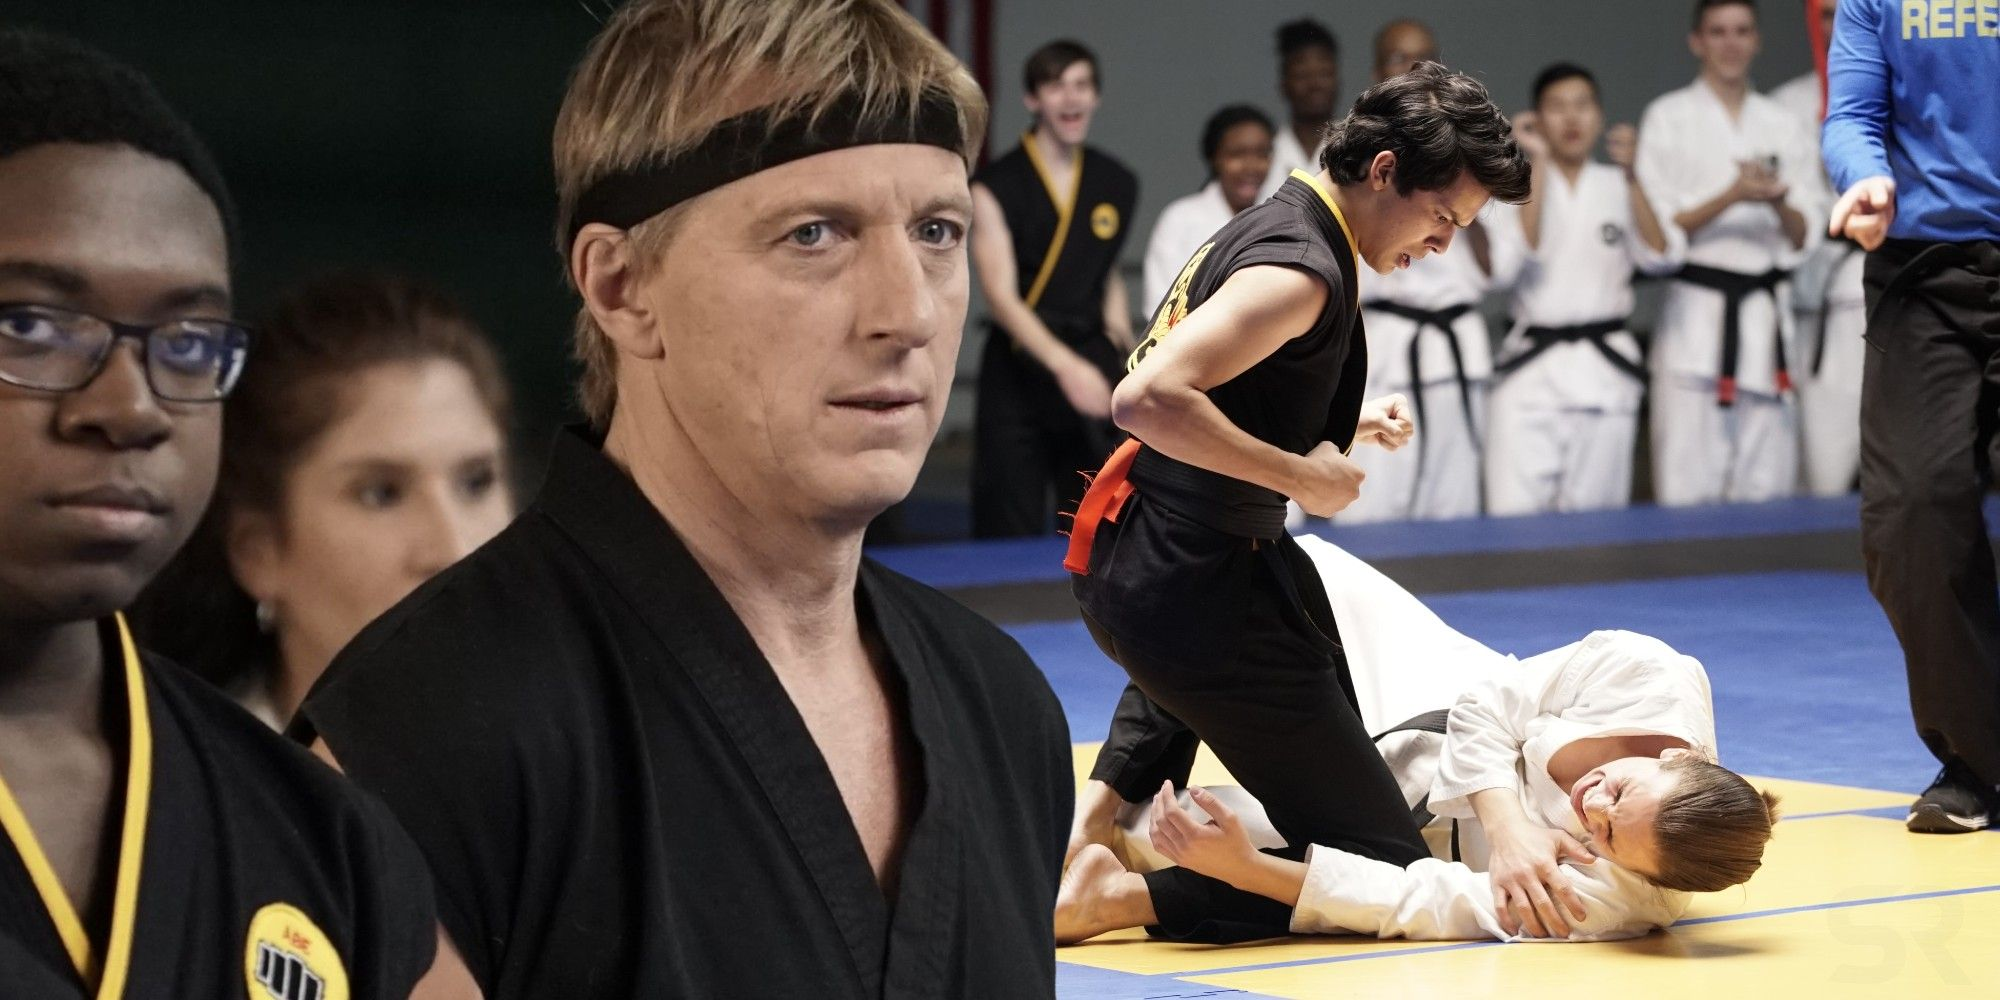 Cobra Kai: No All Valley Tournament Is Season 3's Biggest Disappointment